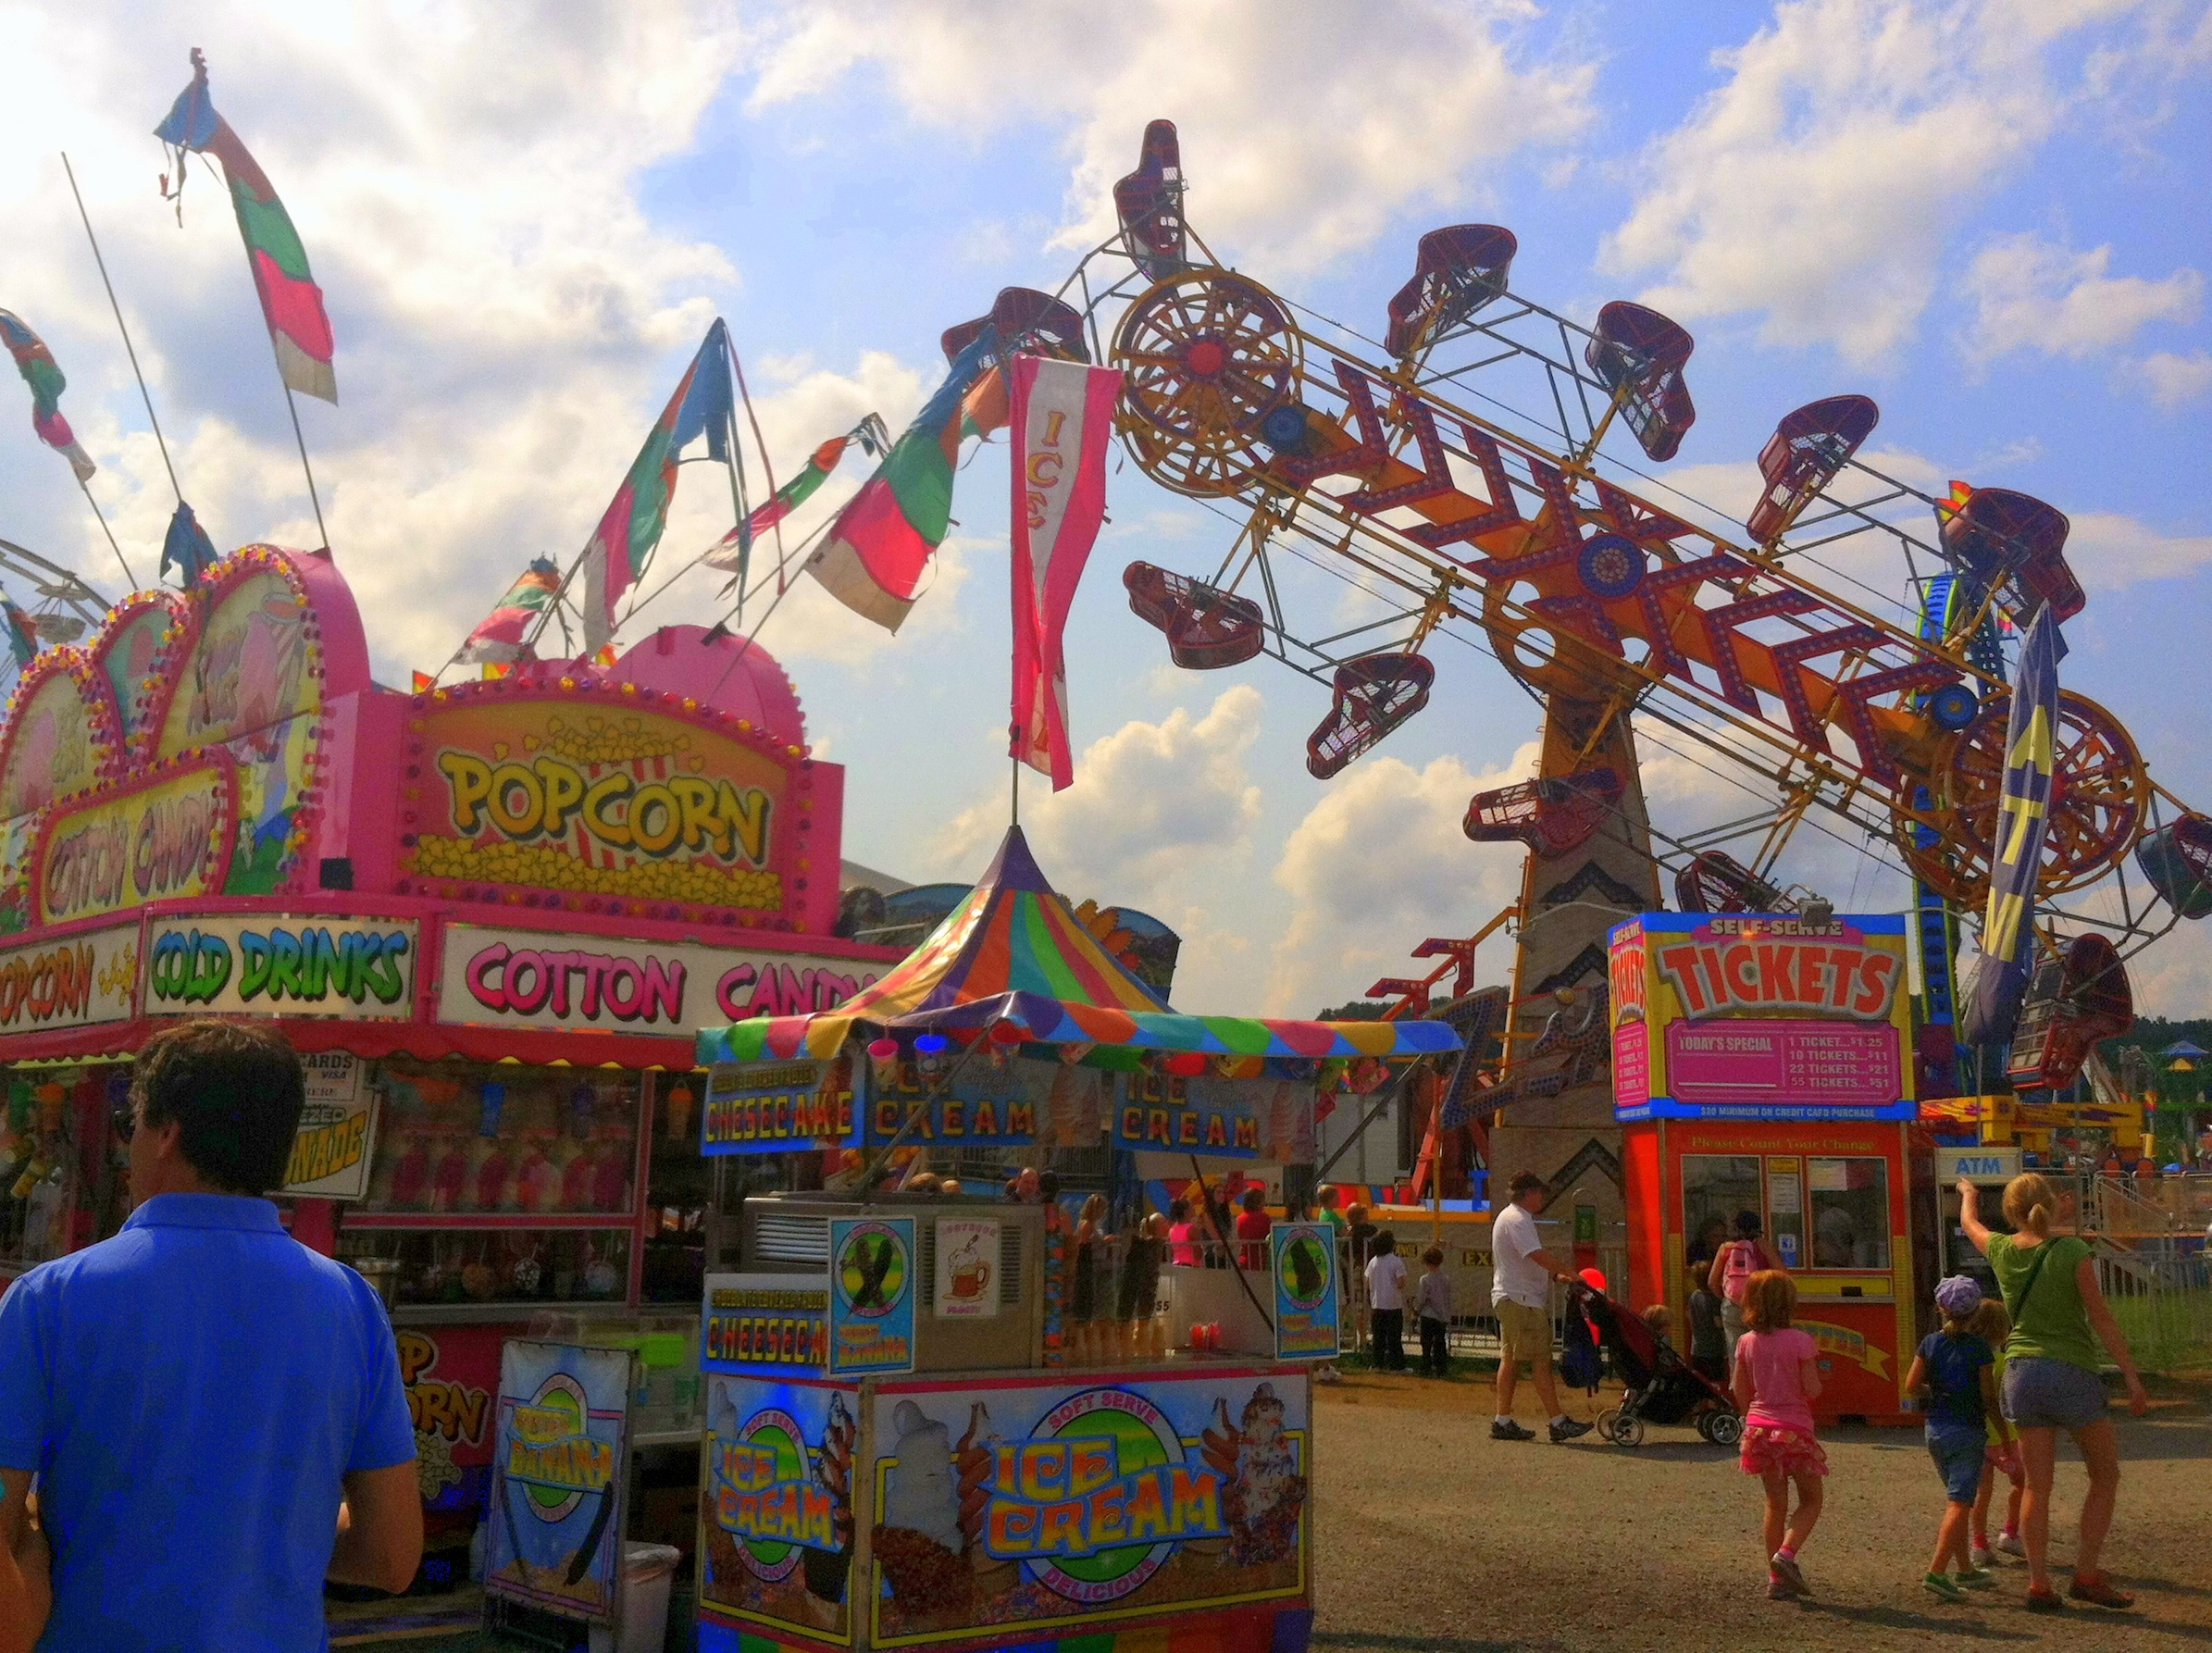 Saturday at the Fair; Sussex County's Got Talent a Highlight ...